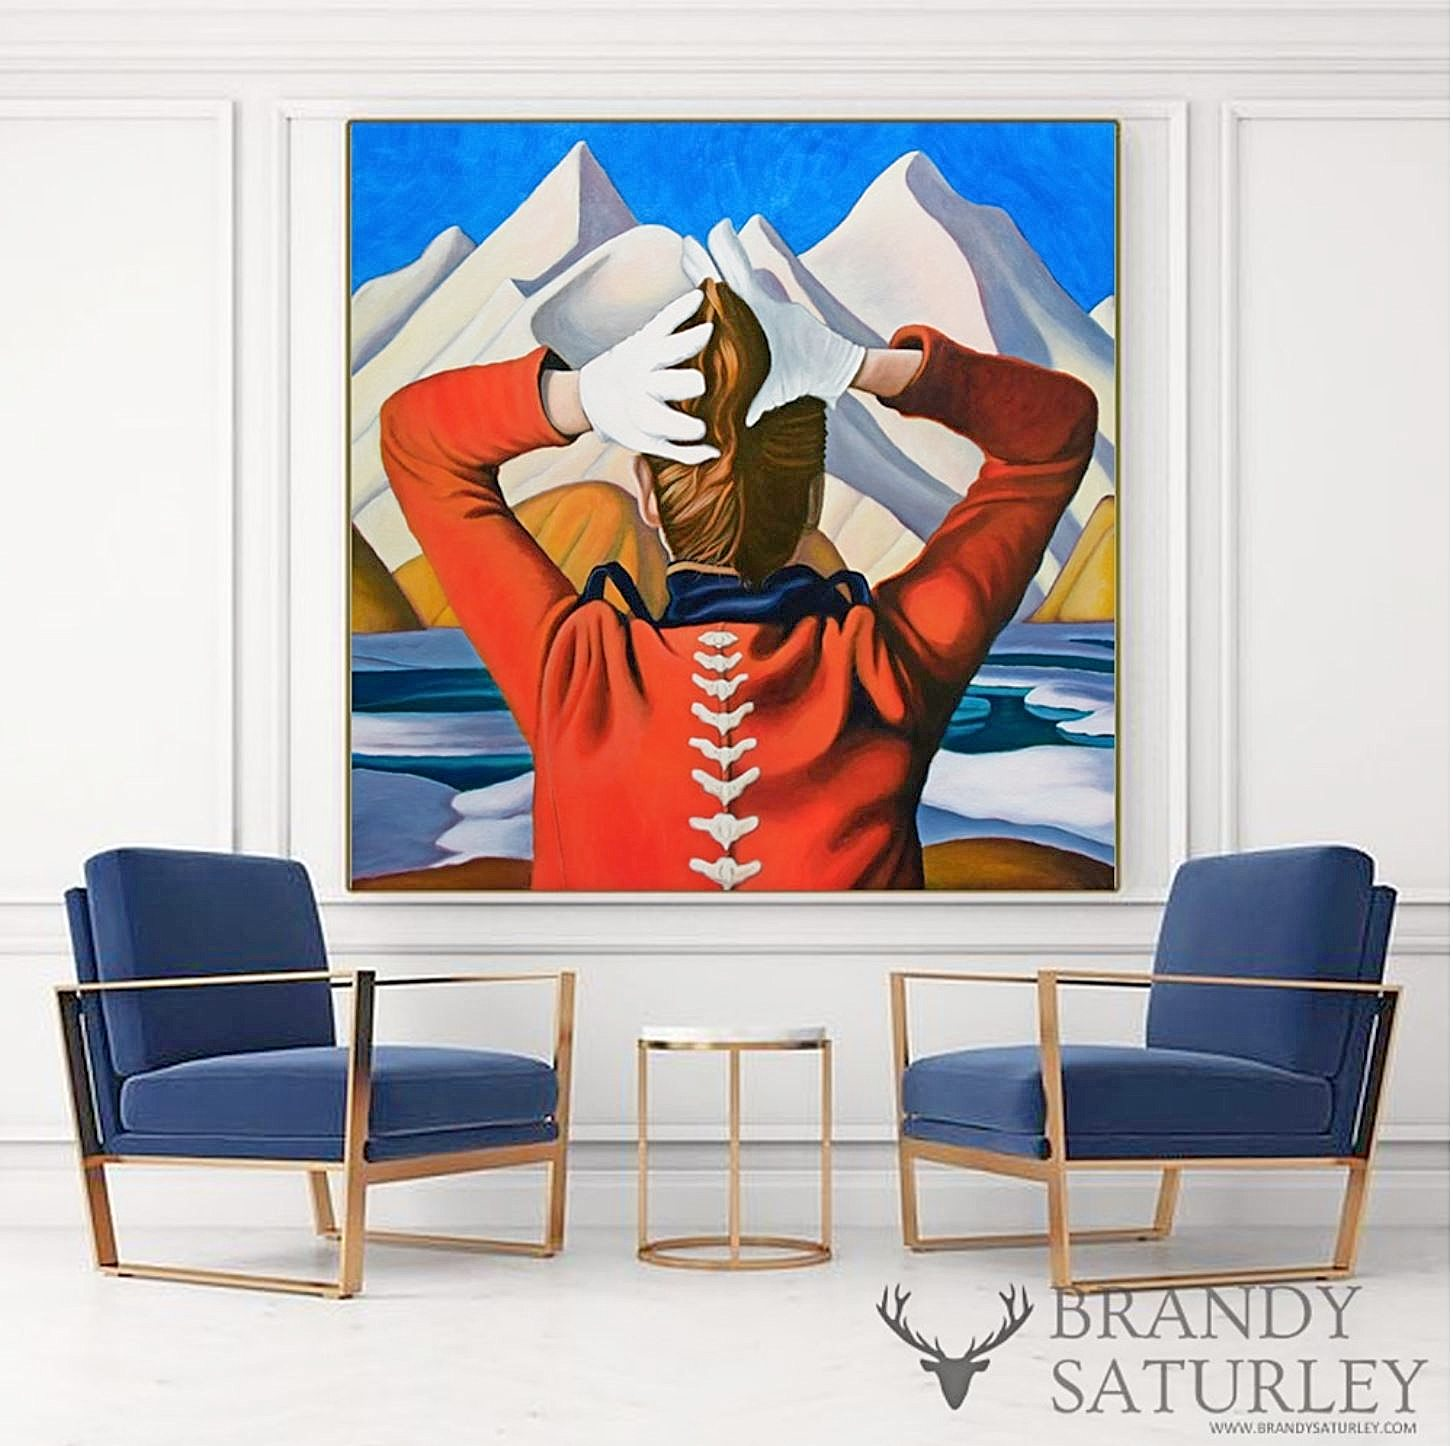 painting of woman in red coat with backbone by Brandy Saturley